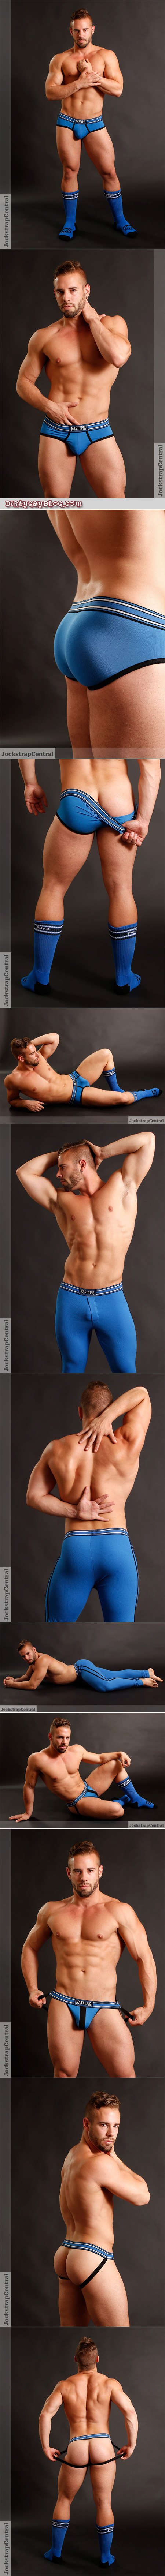 New Nasty Pig Champ line of briefs, longjohns and jockstraps modeled by a man with a big muscular ass and legs.